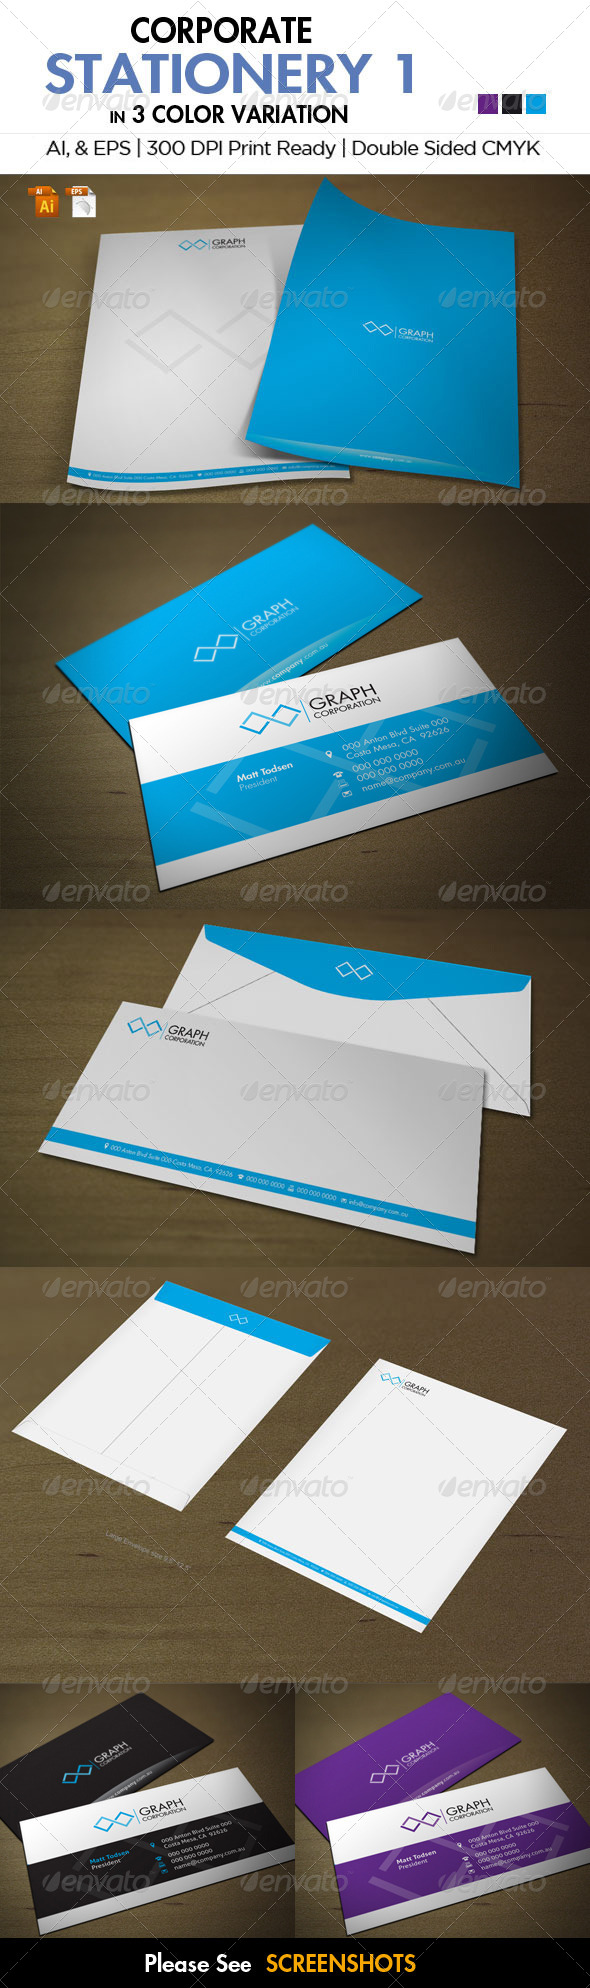 Corporate Stationery 1 - Stationery Print Templates